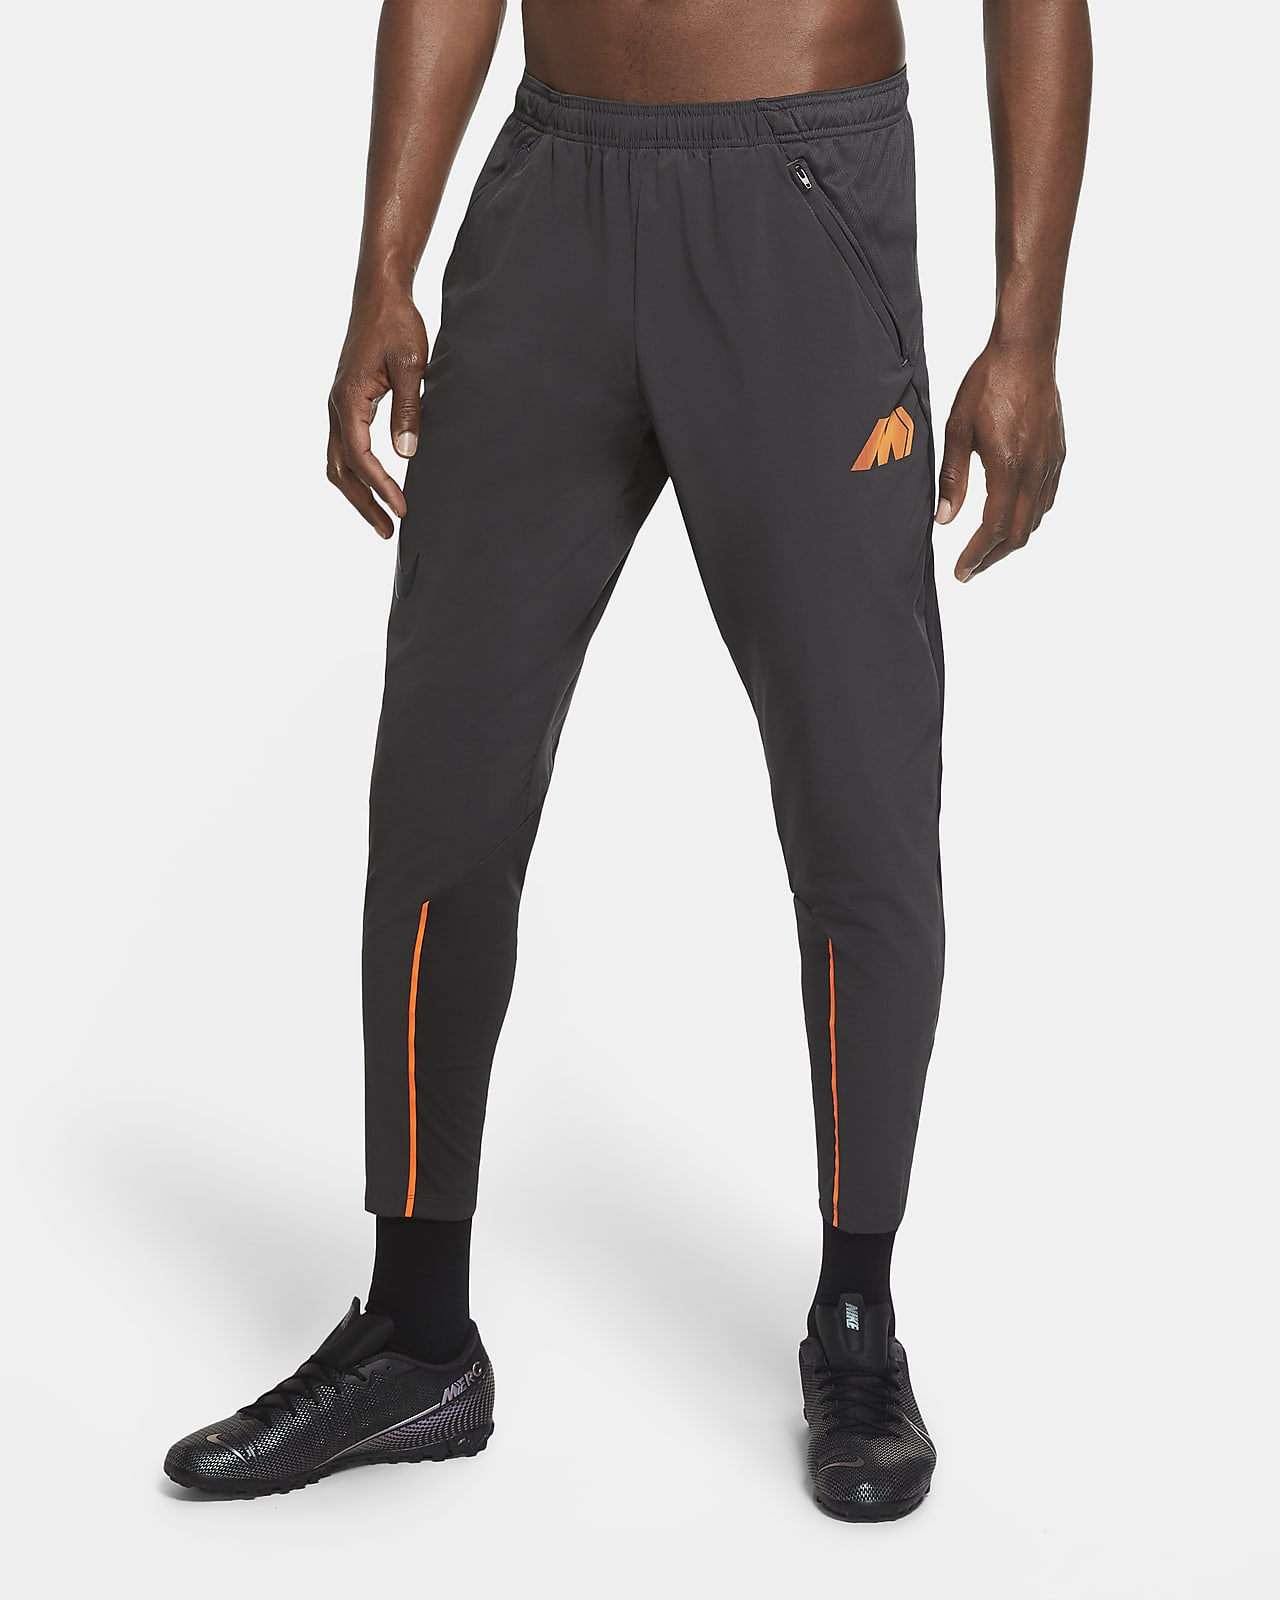 Nike Dri-FIT Mercurial Strike Men's Woven Soccer Pants